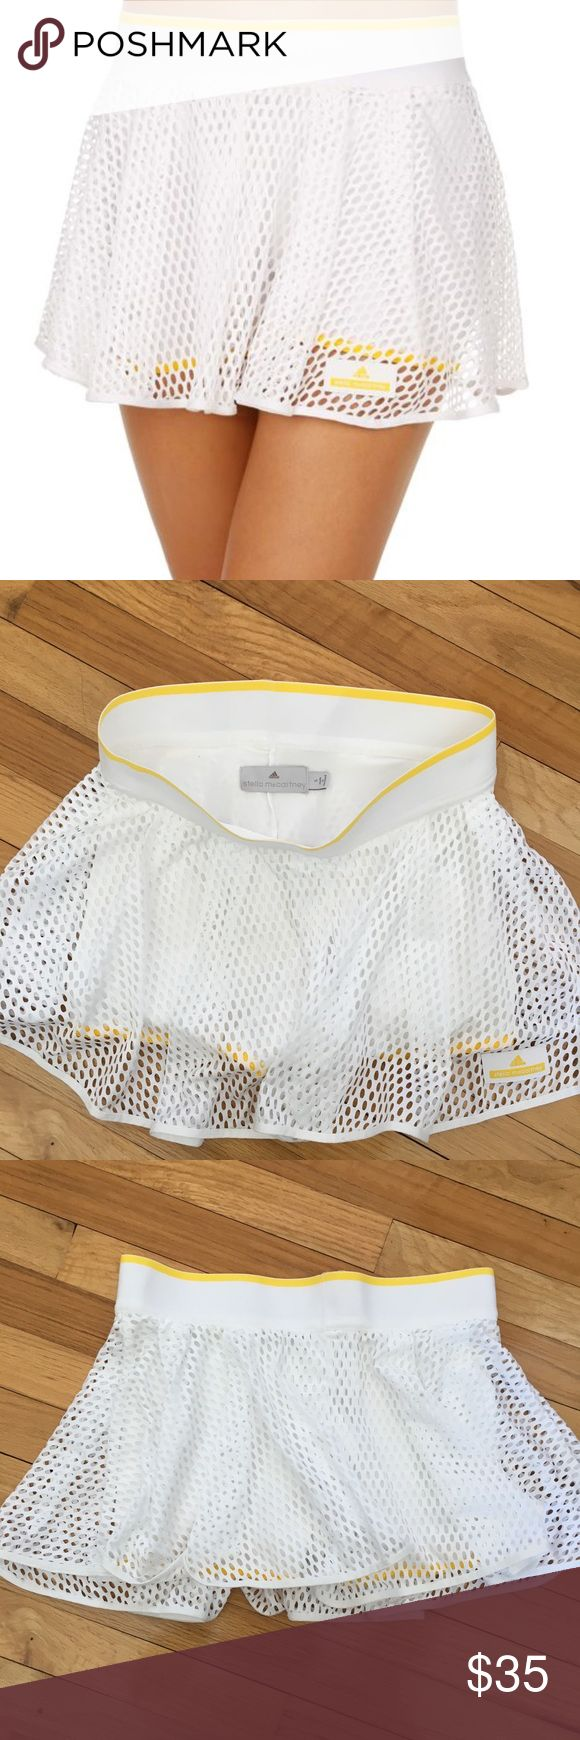 Adidas Barricade skirt by Stella McCartney Barely worn white skort (no stains as shown in the pictures). This is perfect athletic attire: comfortable and cute! Adidas by Stella McCartney Skirts Mini